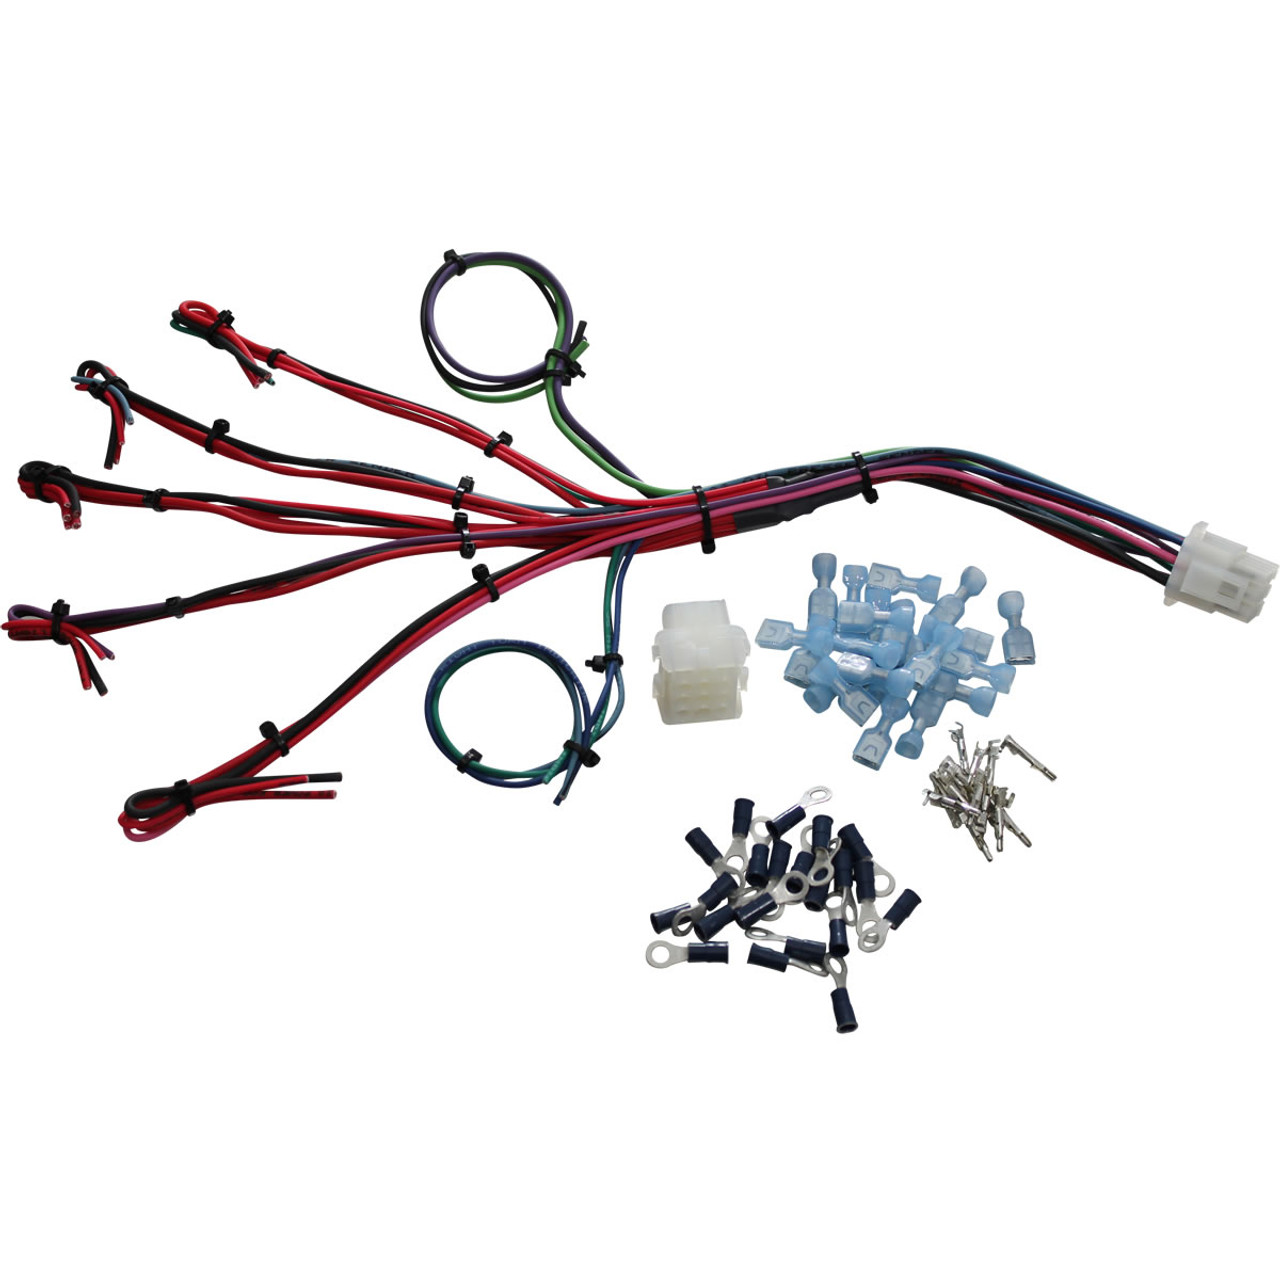 Kwik Wire Wiring Diagram | Wiring Diagram  Wire Ignition Switch Harness Diagram For Kwik on